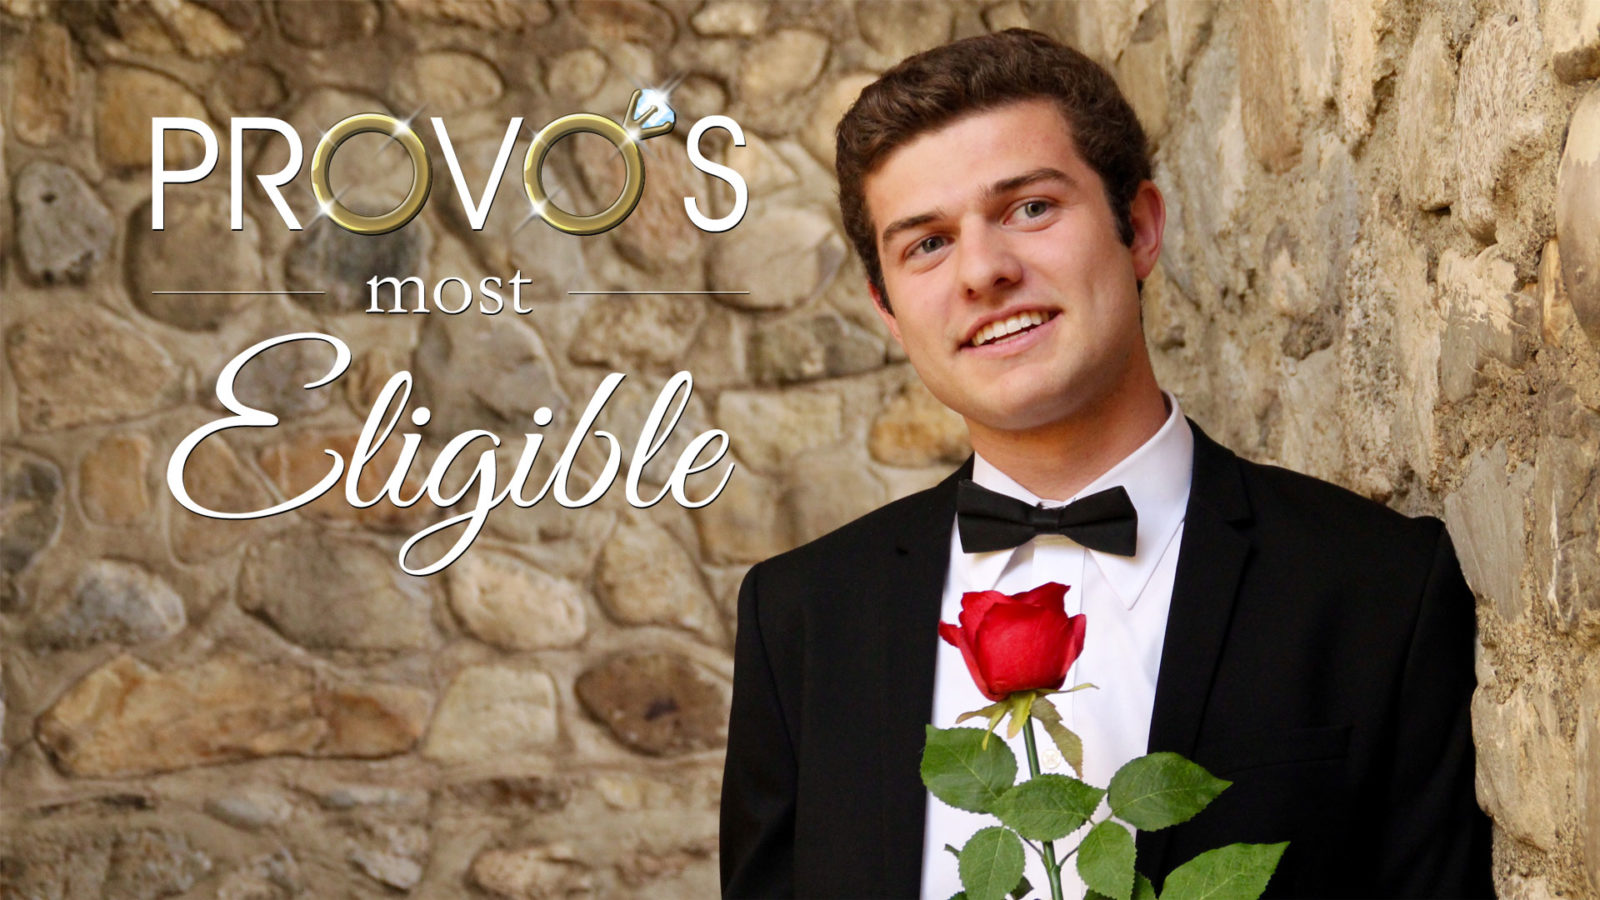 Provo's Most Eligible, Season 1